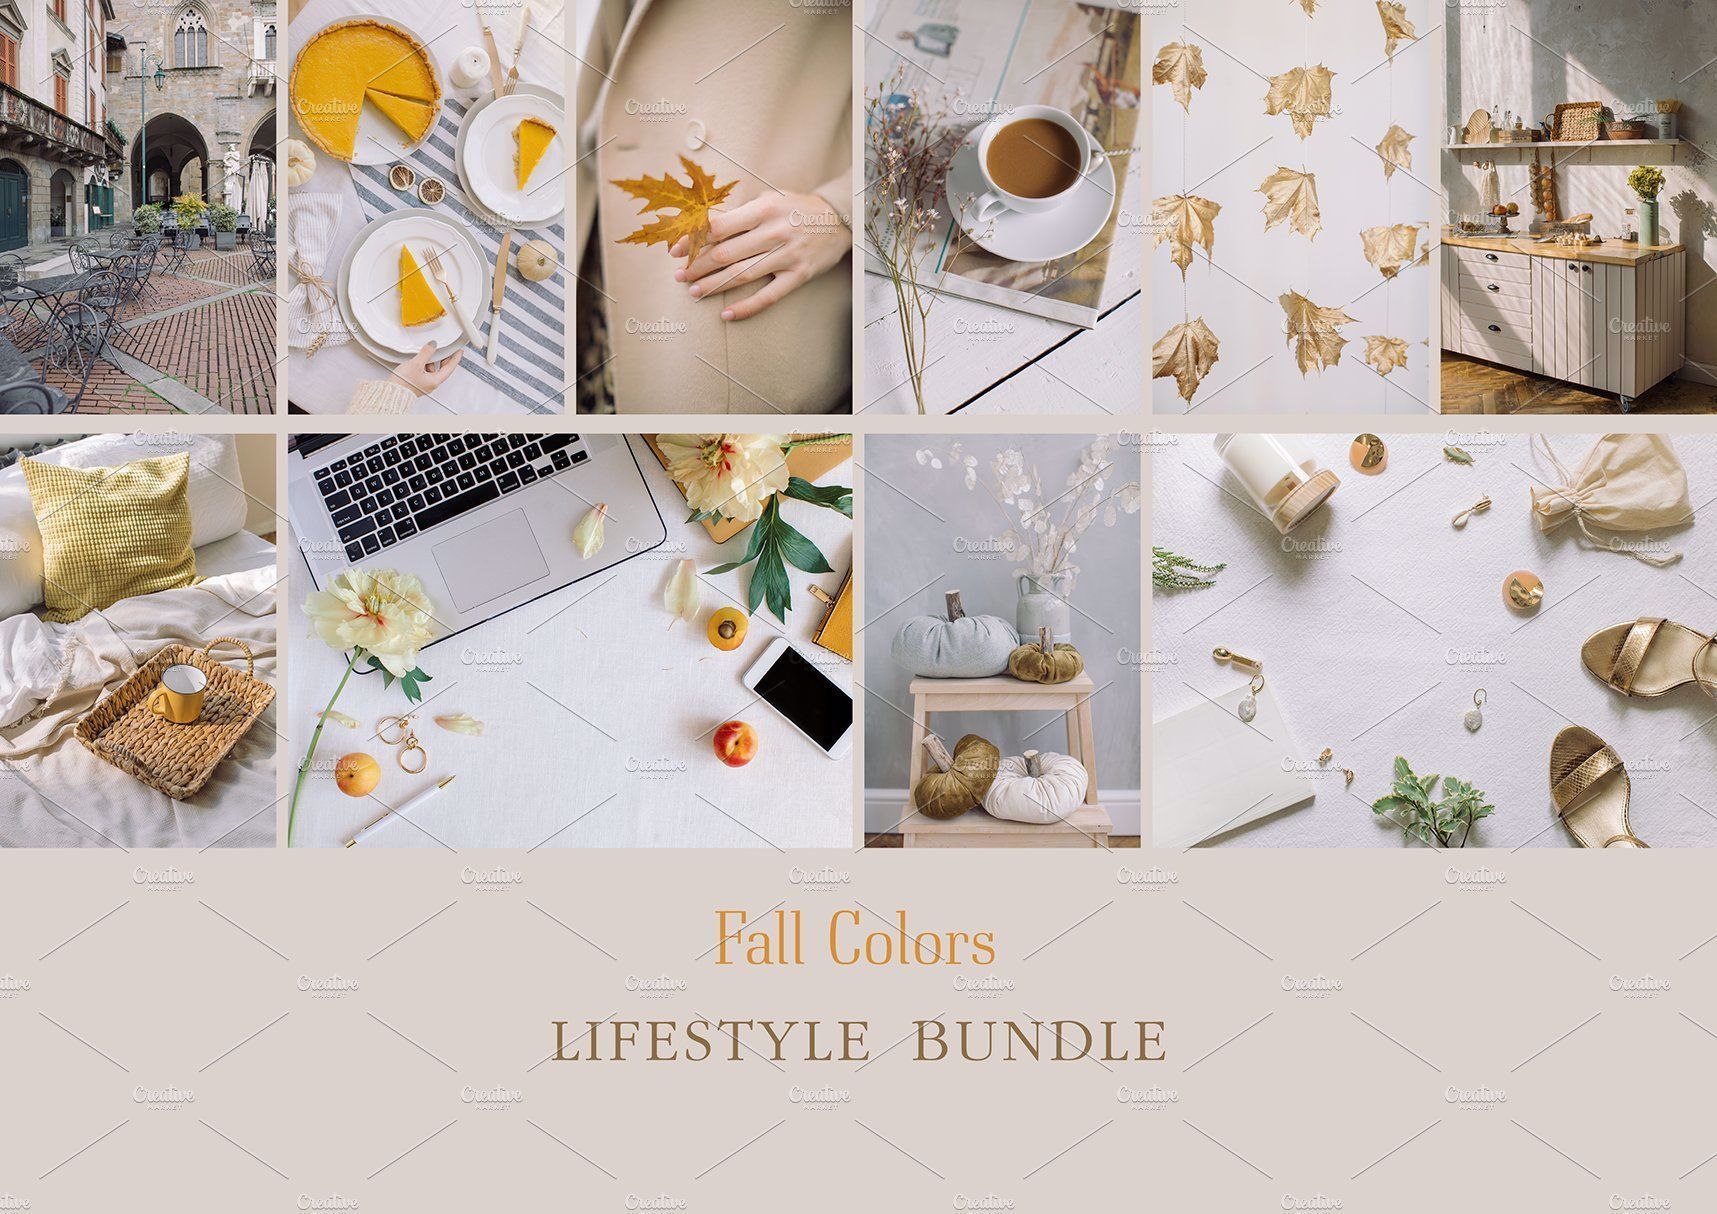 Fall colors  Stock photography bundle 15 styled stock photos Gorgeous photos for bloggers calligraphers florists websites magazines business owners wedding professionals...